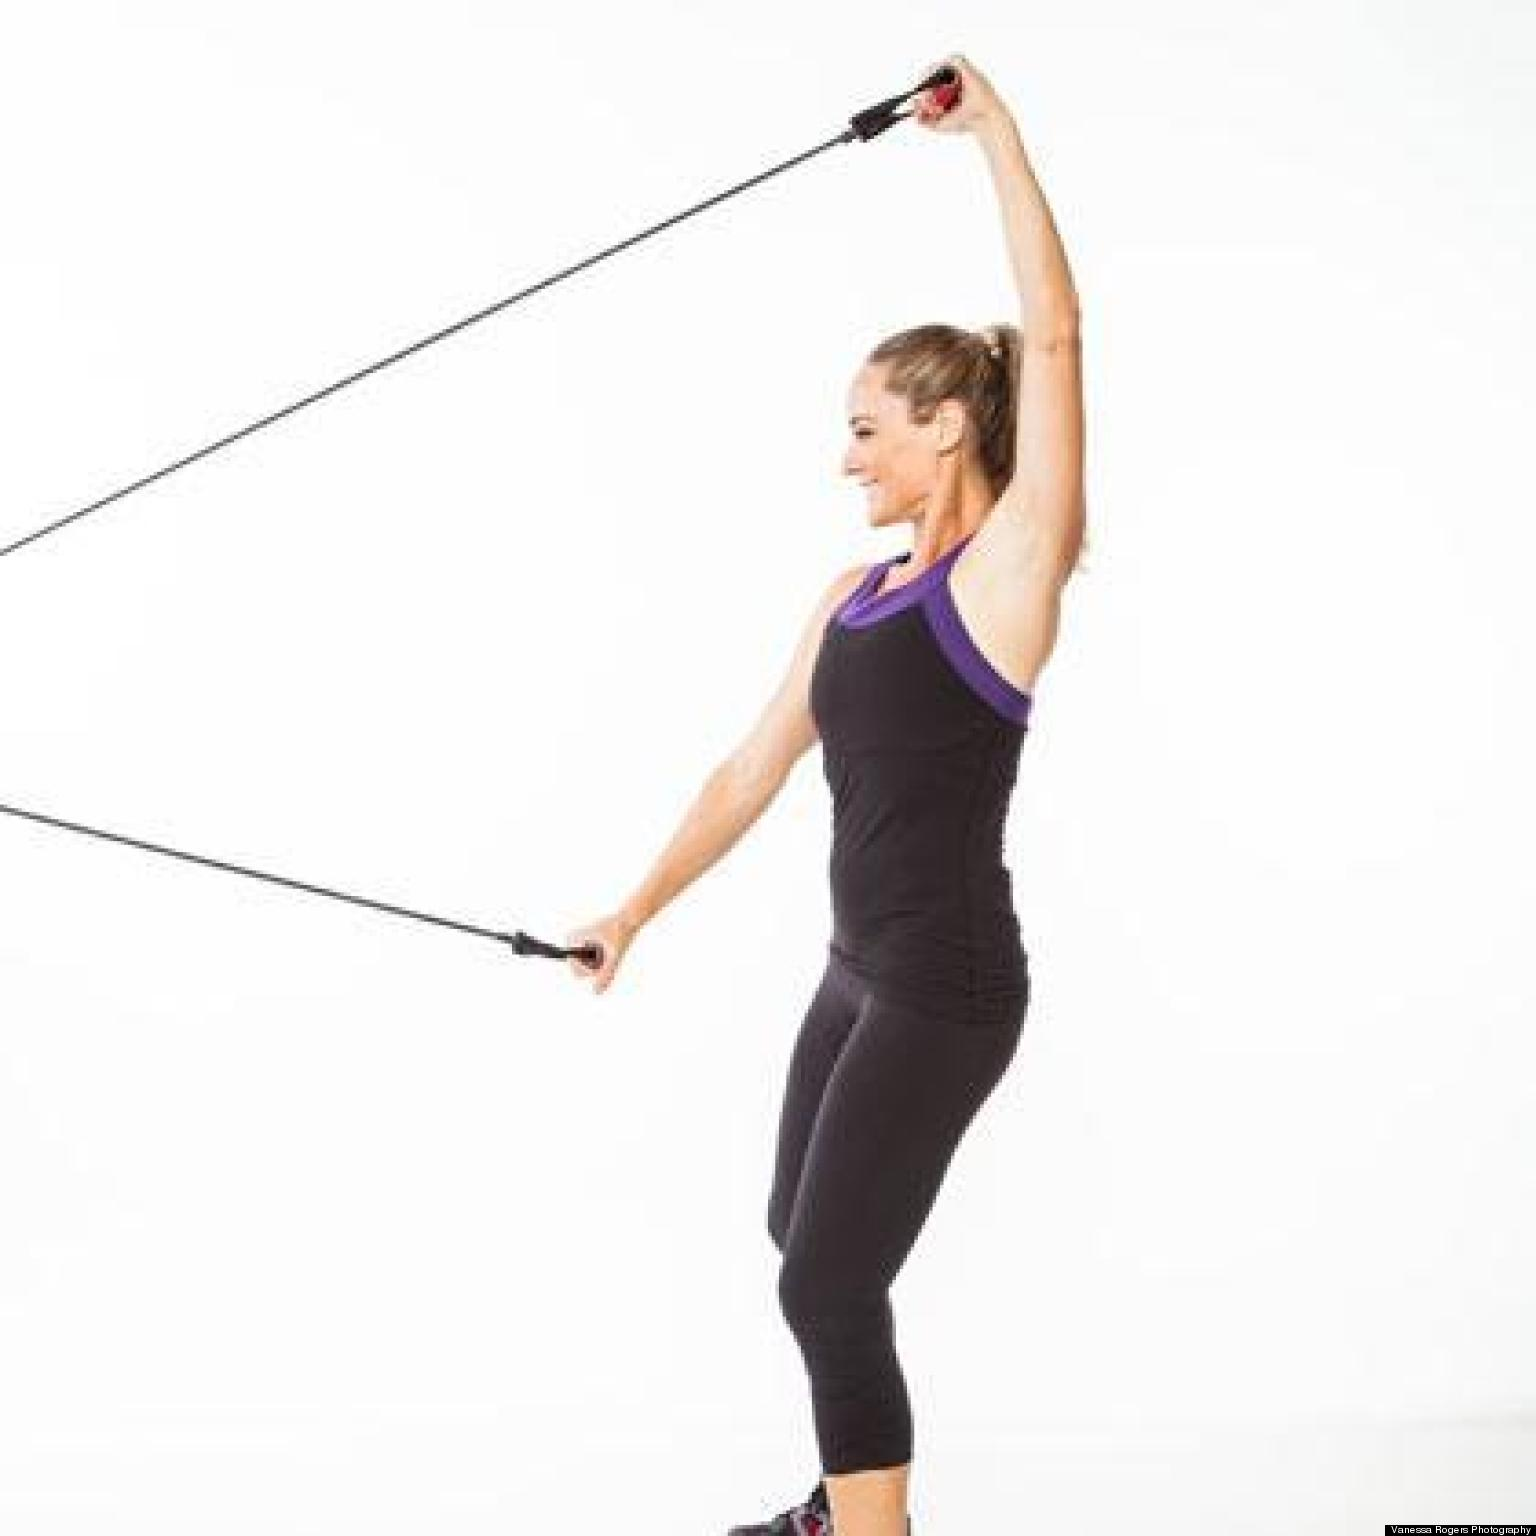 The Resistance Band Cardio Workout | HuffPost